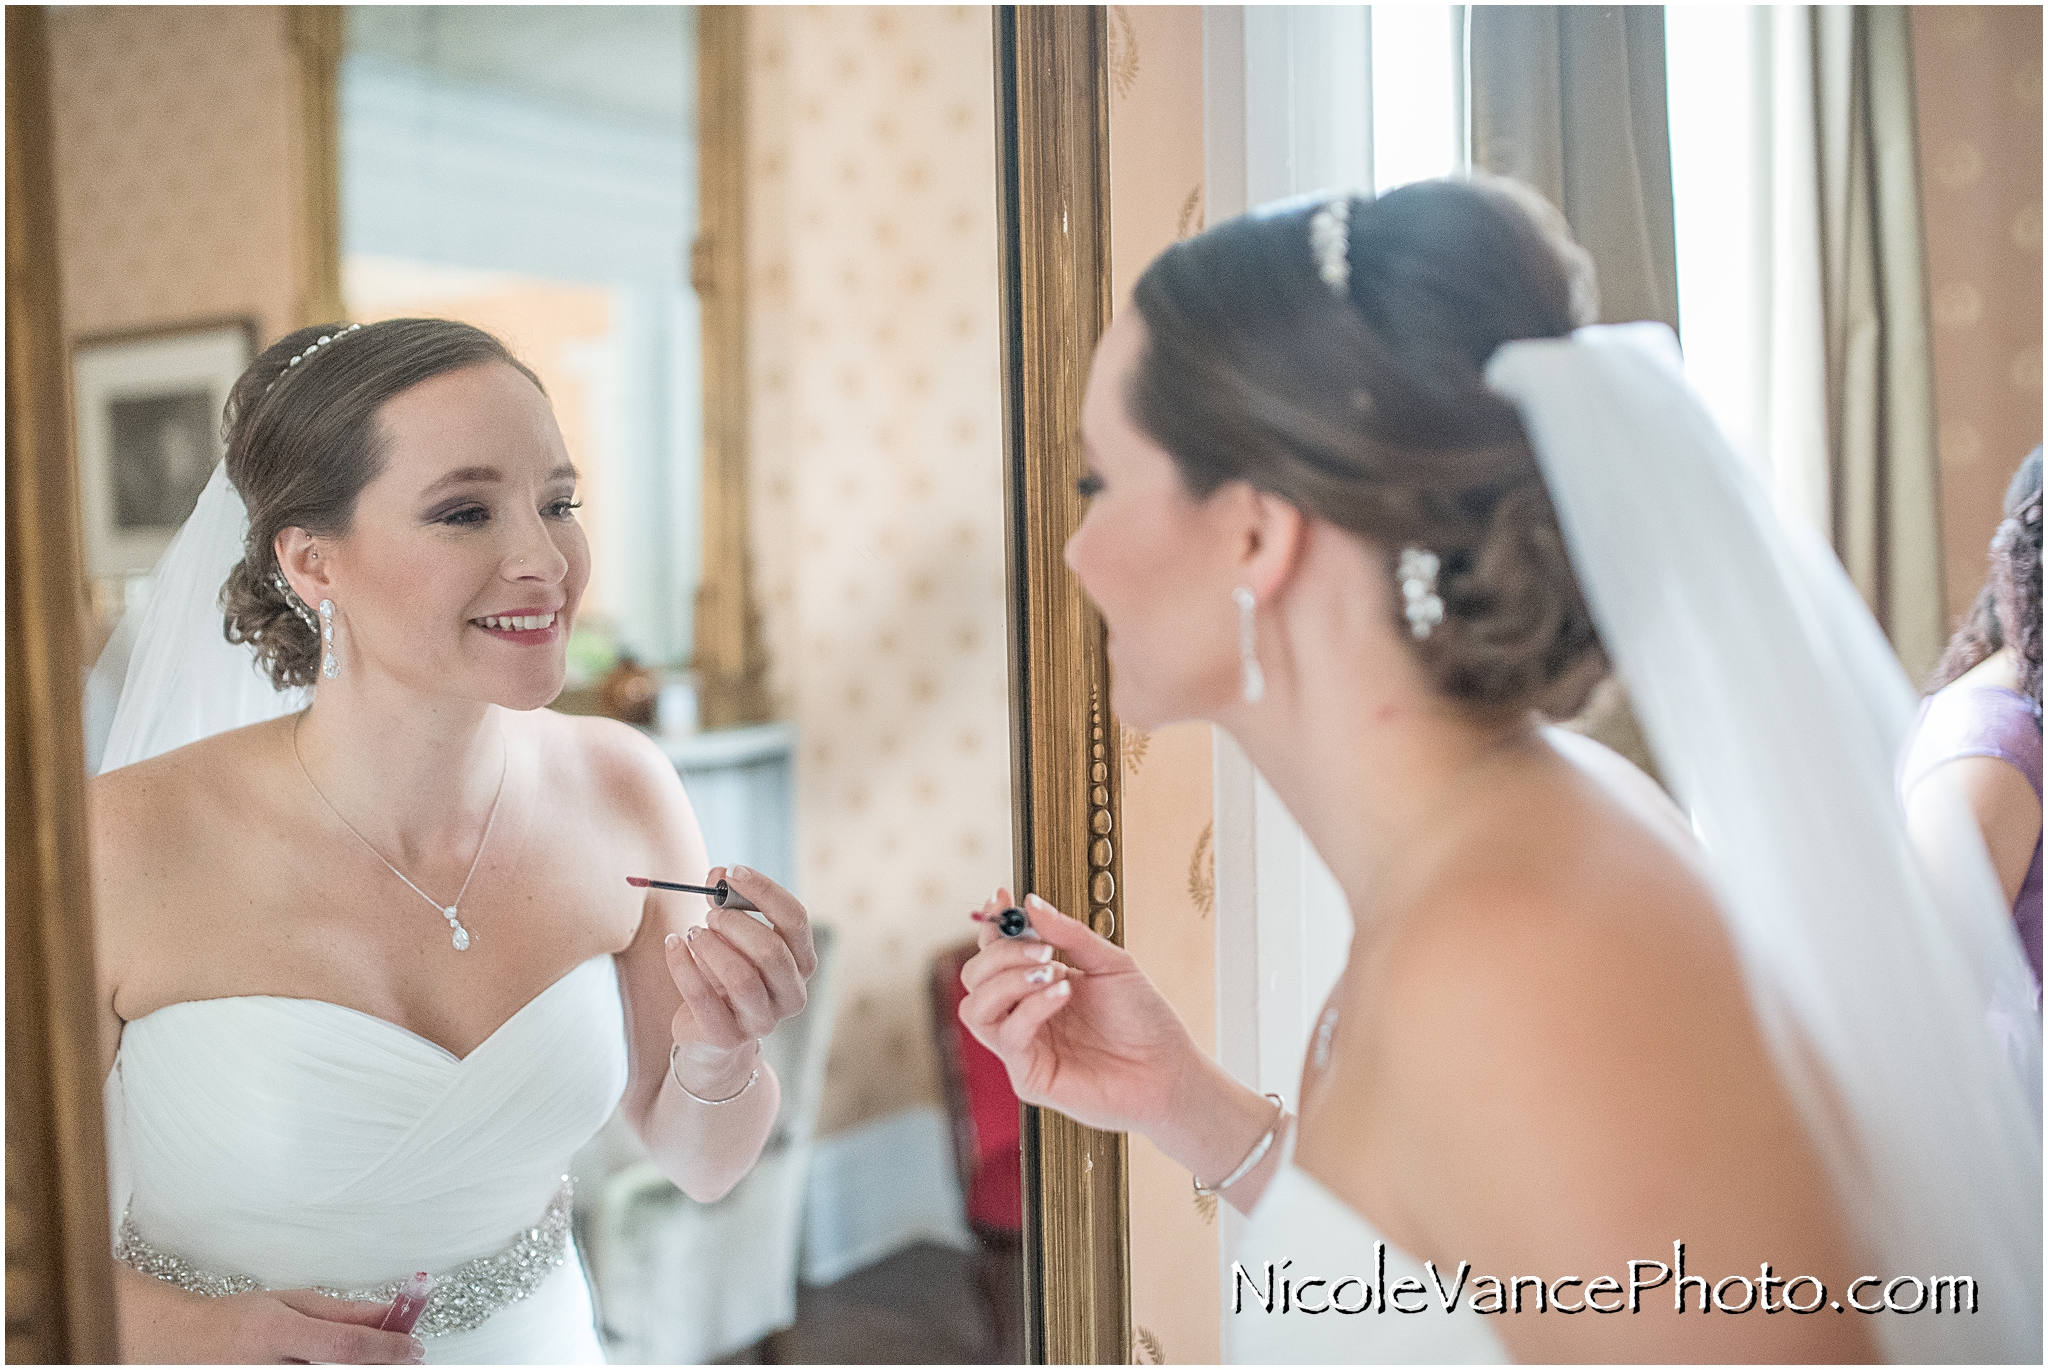 Last minute lipstick touch up before her first look with her husband-to-be.